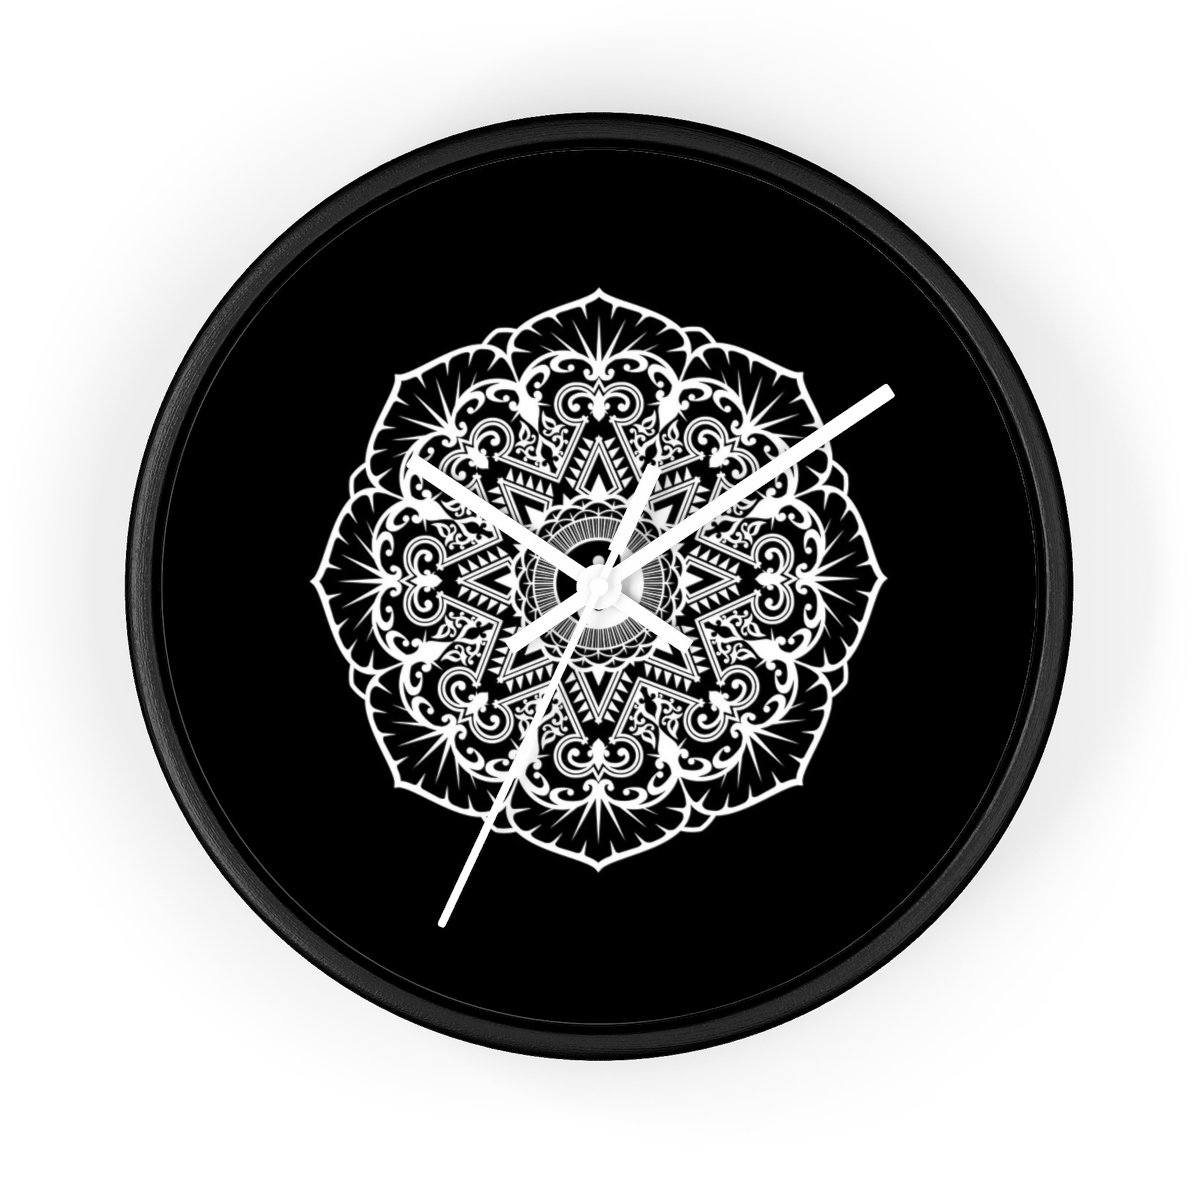 Mandala Black - Wall clock Wall Clock Printify 10 in Black White